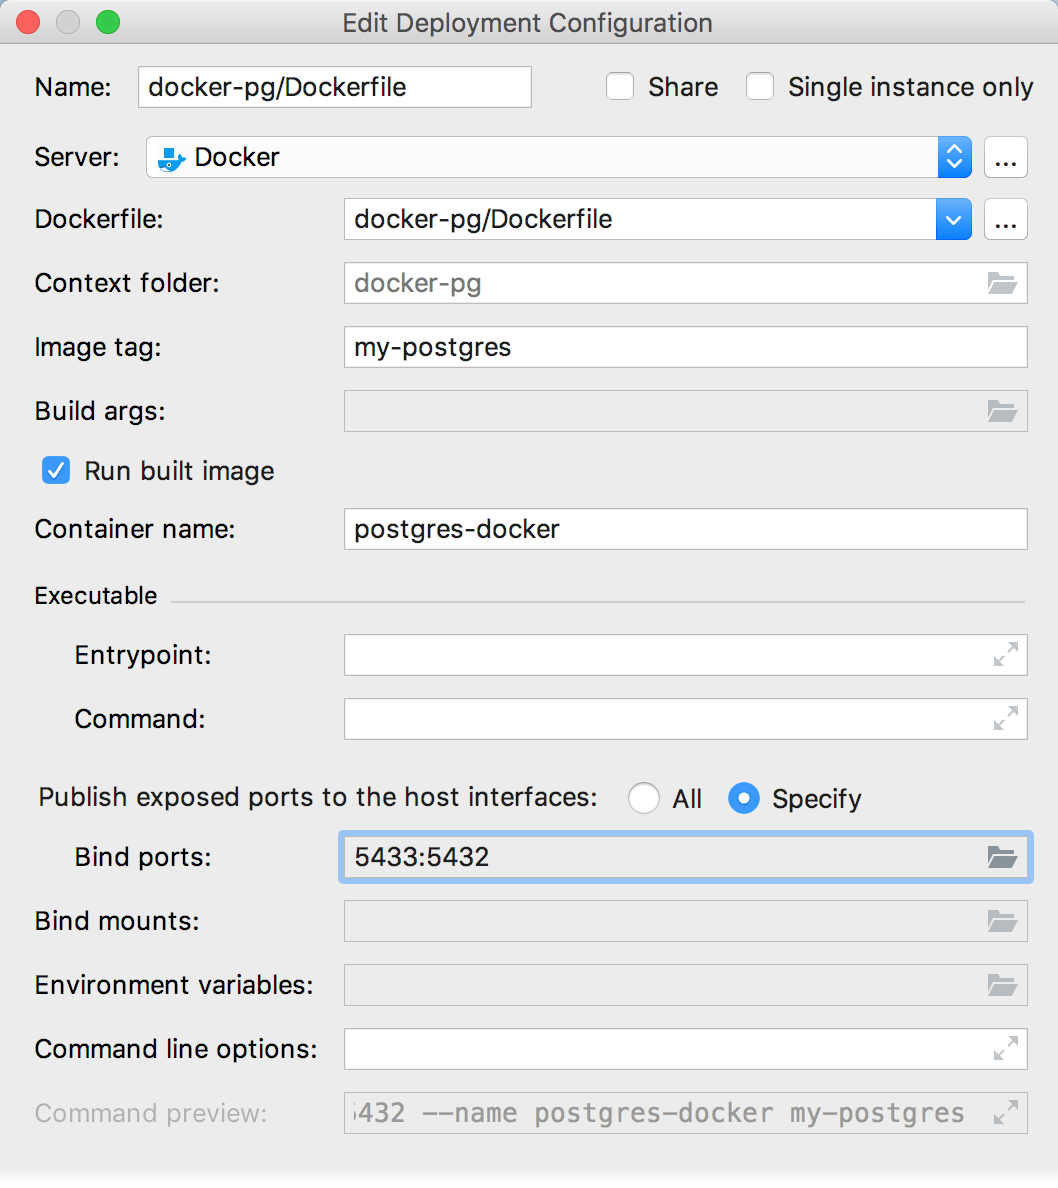 The Edit Deployment Configuration dialog with bind ports